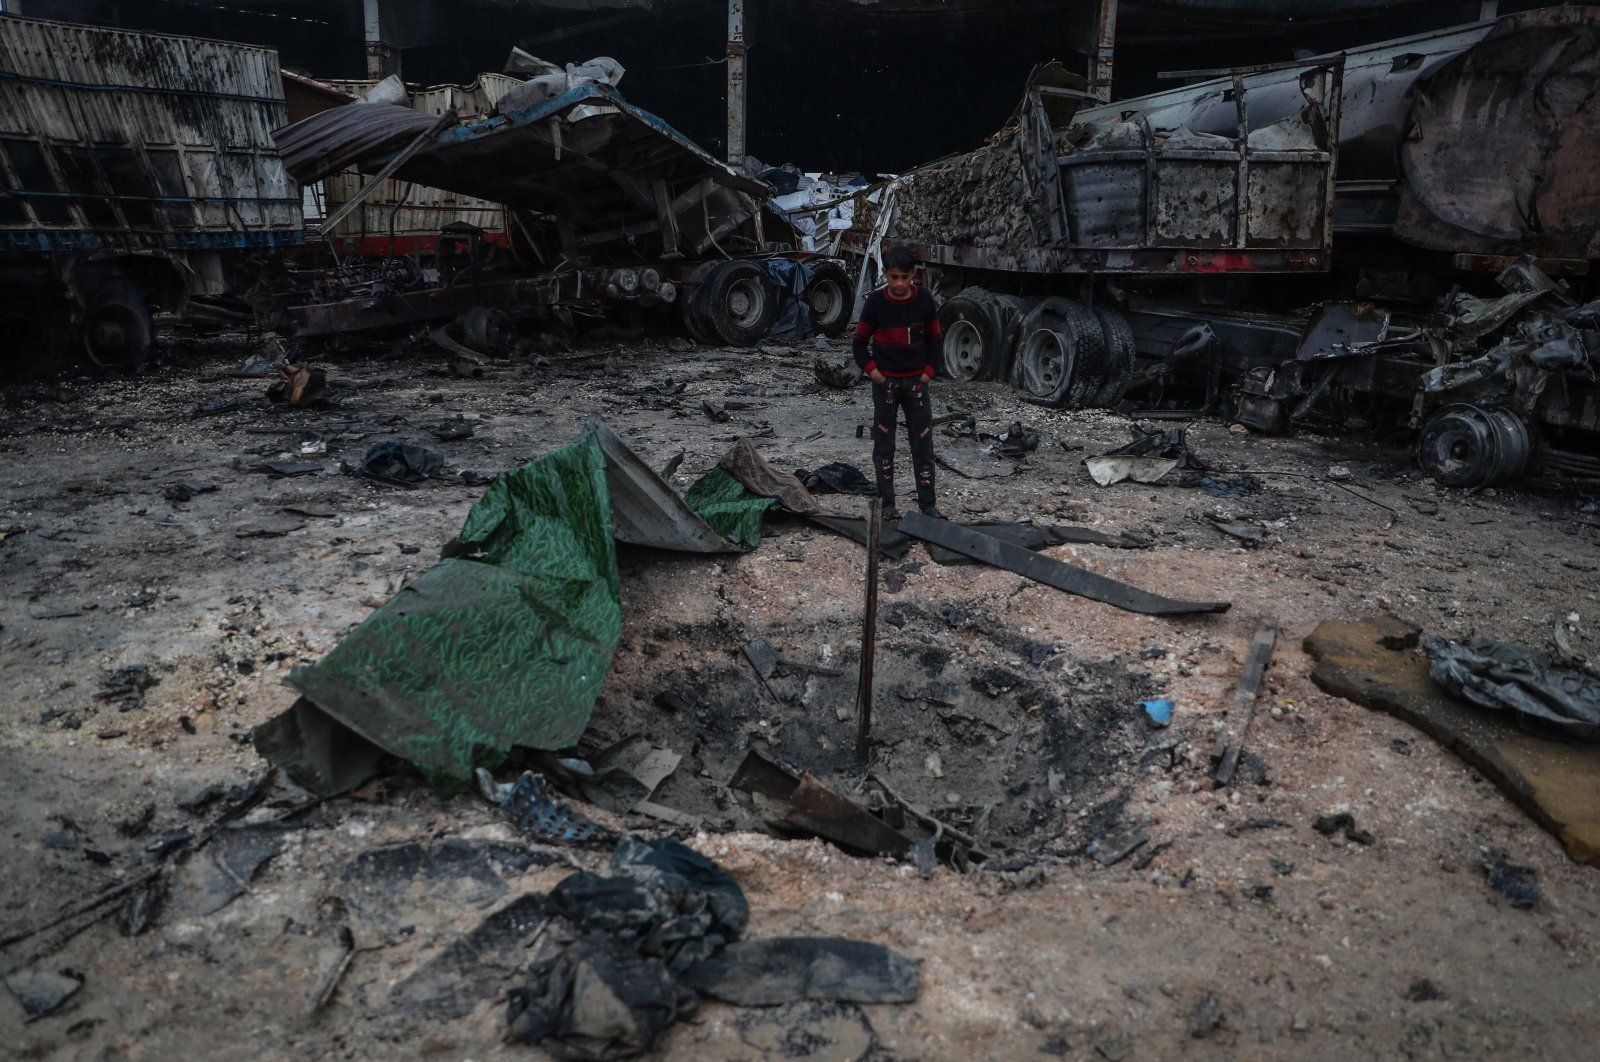 A Syrian child inspects the damage in the aftermath of an airstrike that was allegedly carried out by Russian warplanes on a truck depot near Bab al-Hawa border crossing on the Syrian-Turkish border, Idlib, Syria, March 22, 2021. (Getty Images)